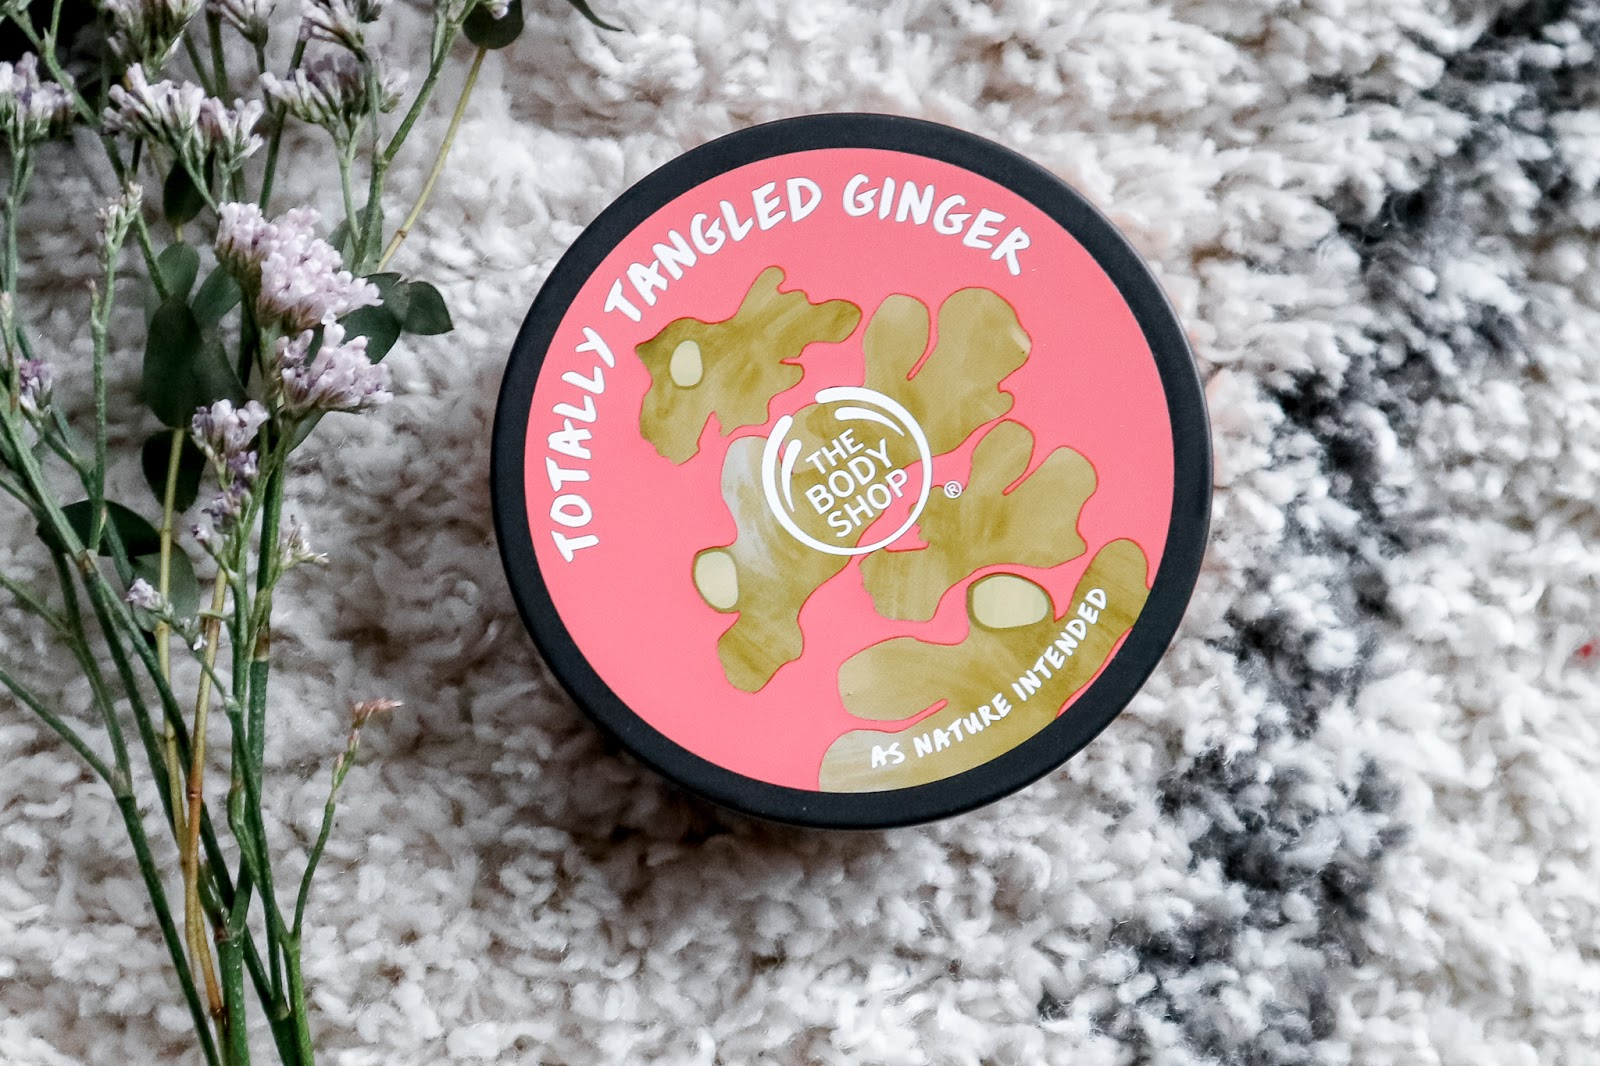 Big mamas home by Jenni S. Viikon suosikki: the Body Shop Totally Tangled Ginger